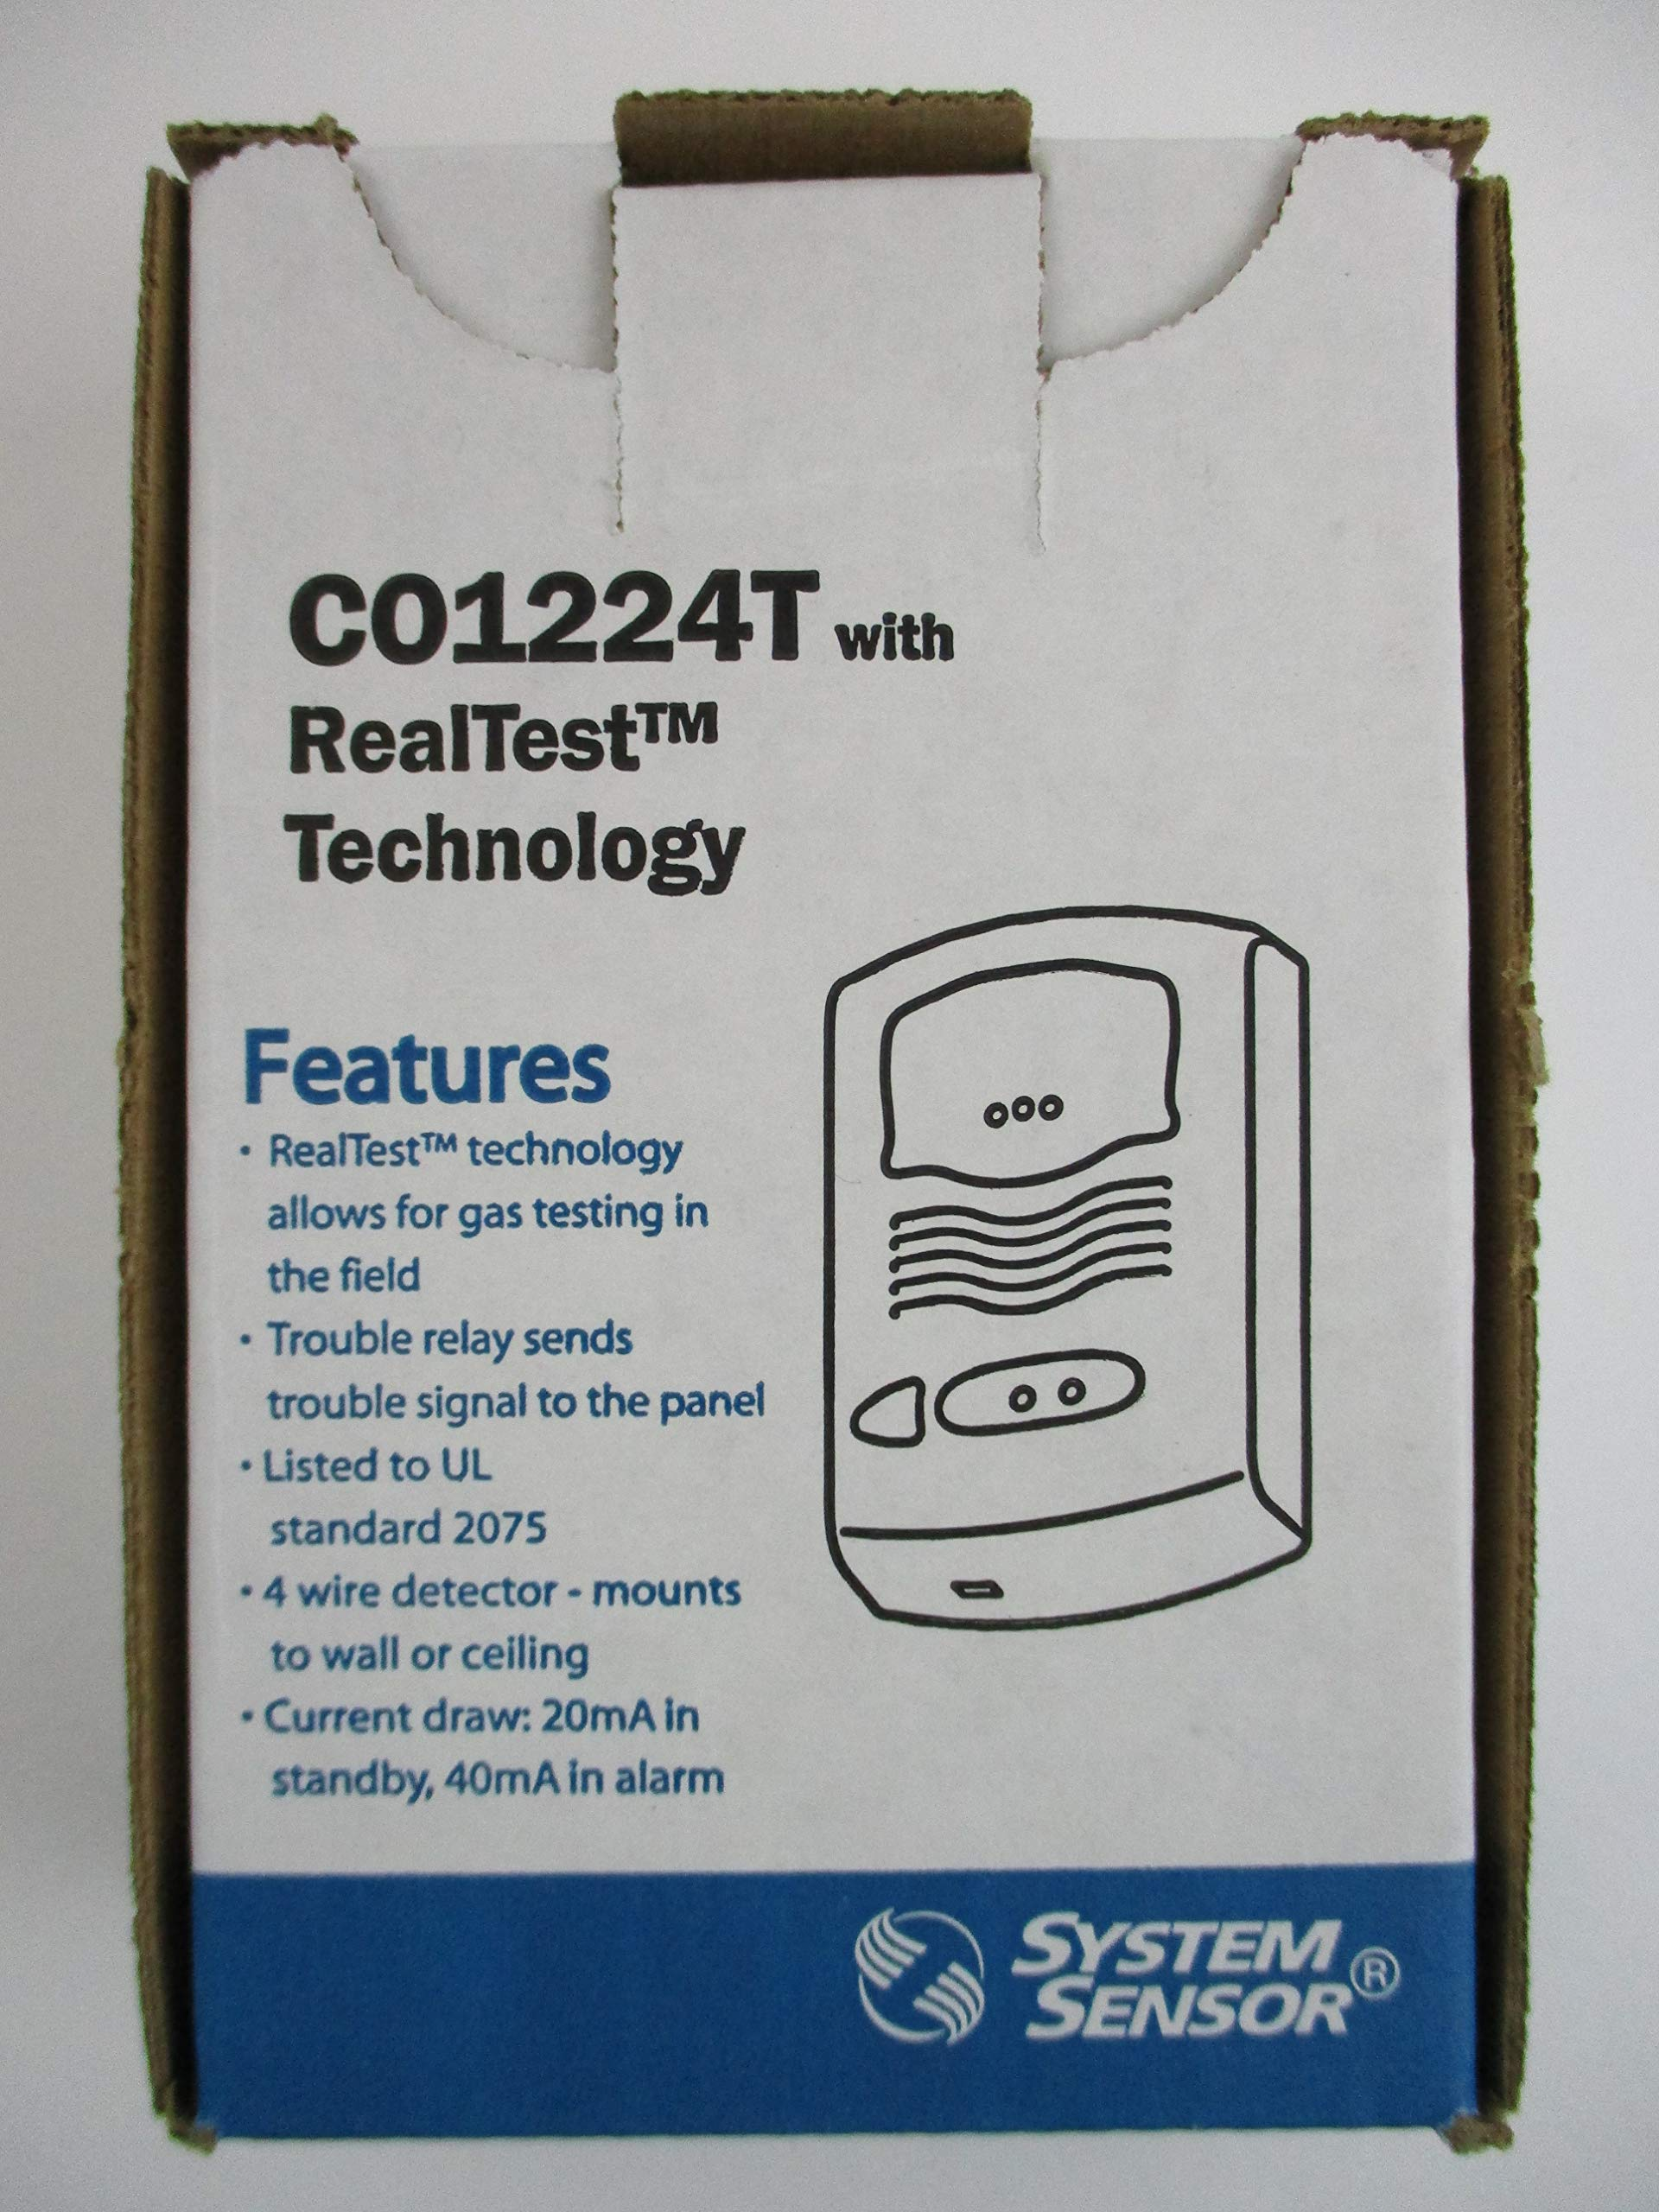 SYSTEM SENSOR CO1224T12/24 volt, 4-wire, system-monitored C02 carbon monoxide detector with RealTest Technology